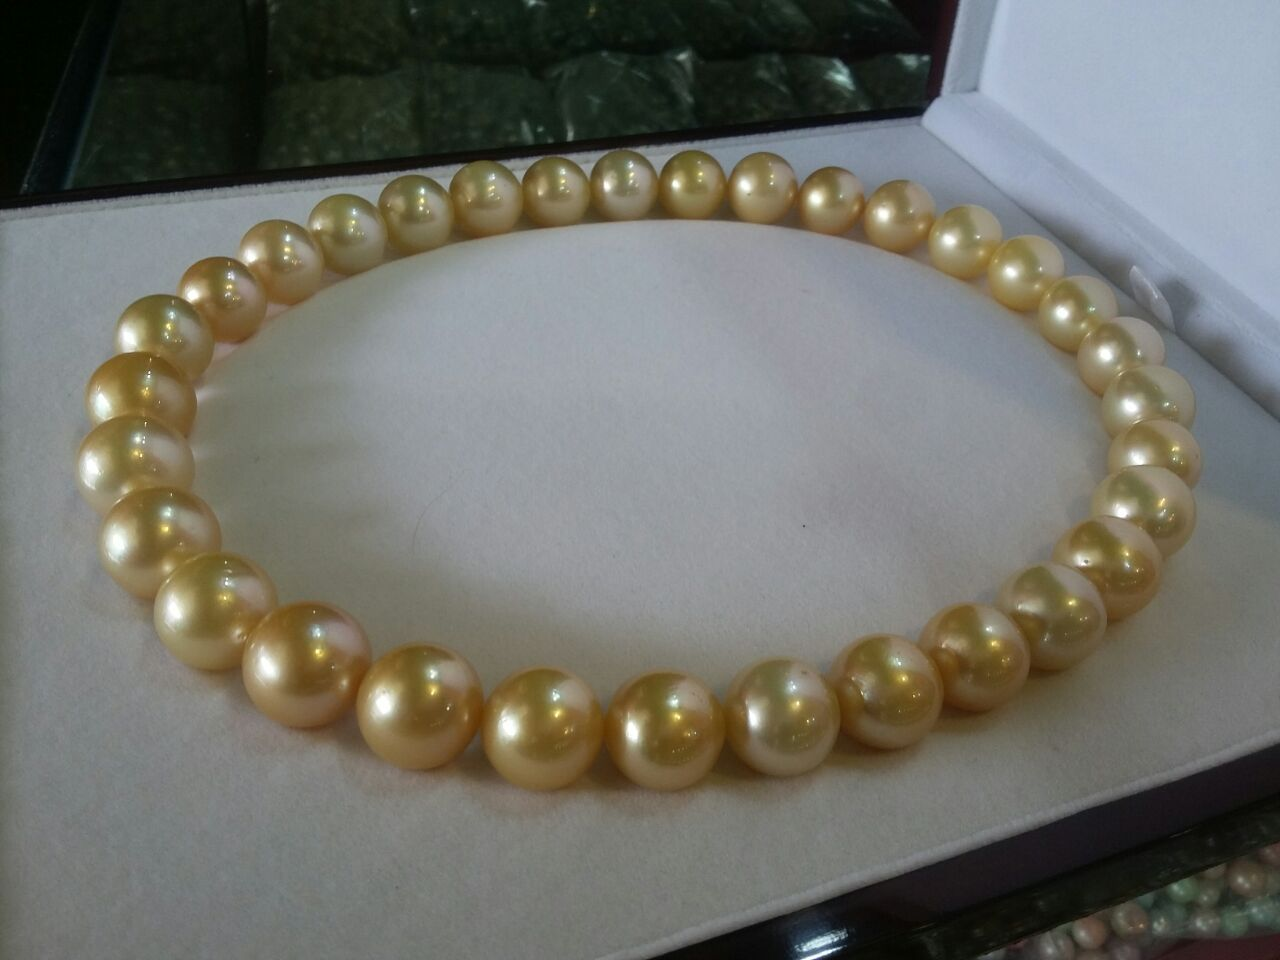 pearl original necklace box vintage authentic check myriad w pearls mikimoto woriginal